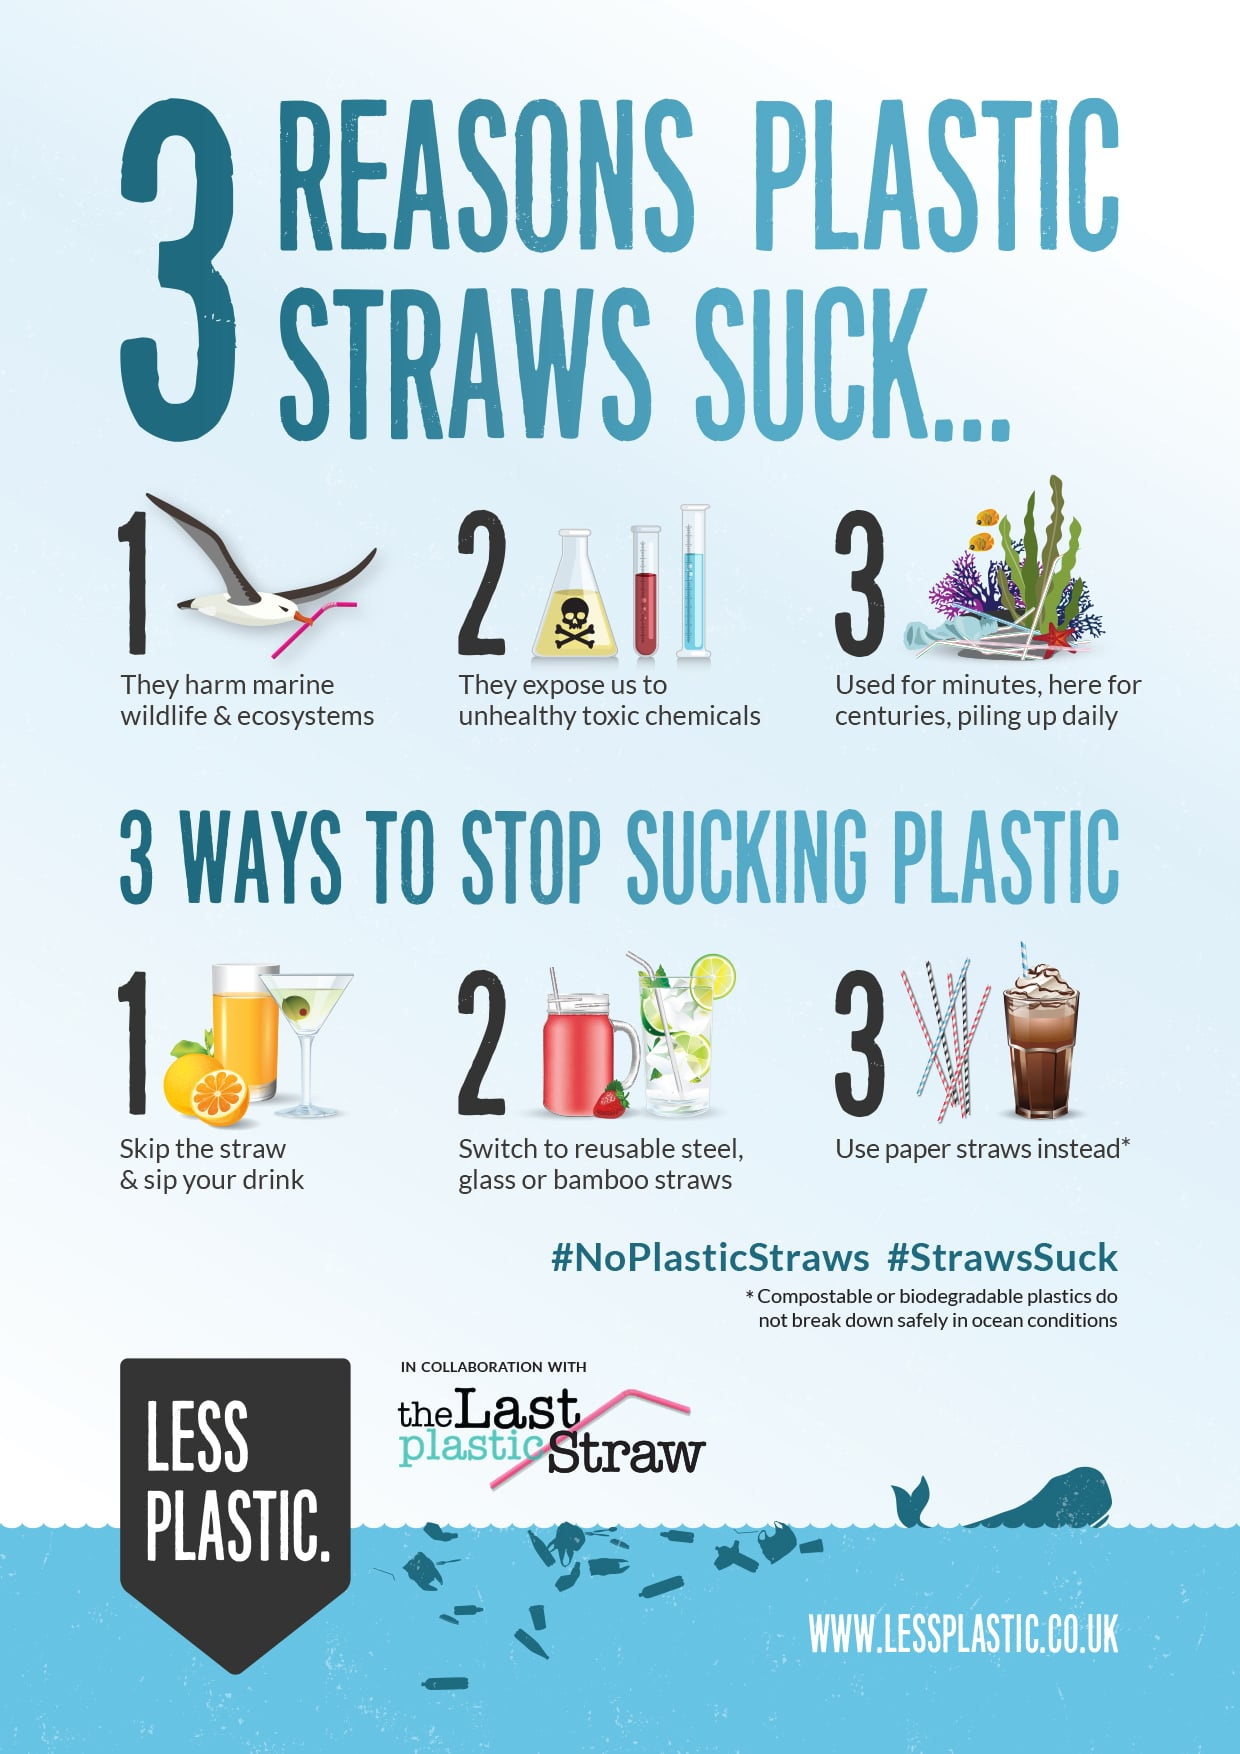 3 reasons plastic straws suck - Posters & Postcards